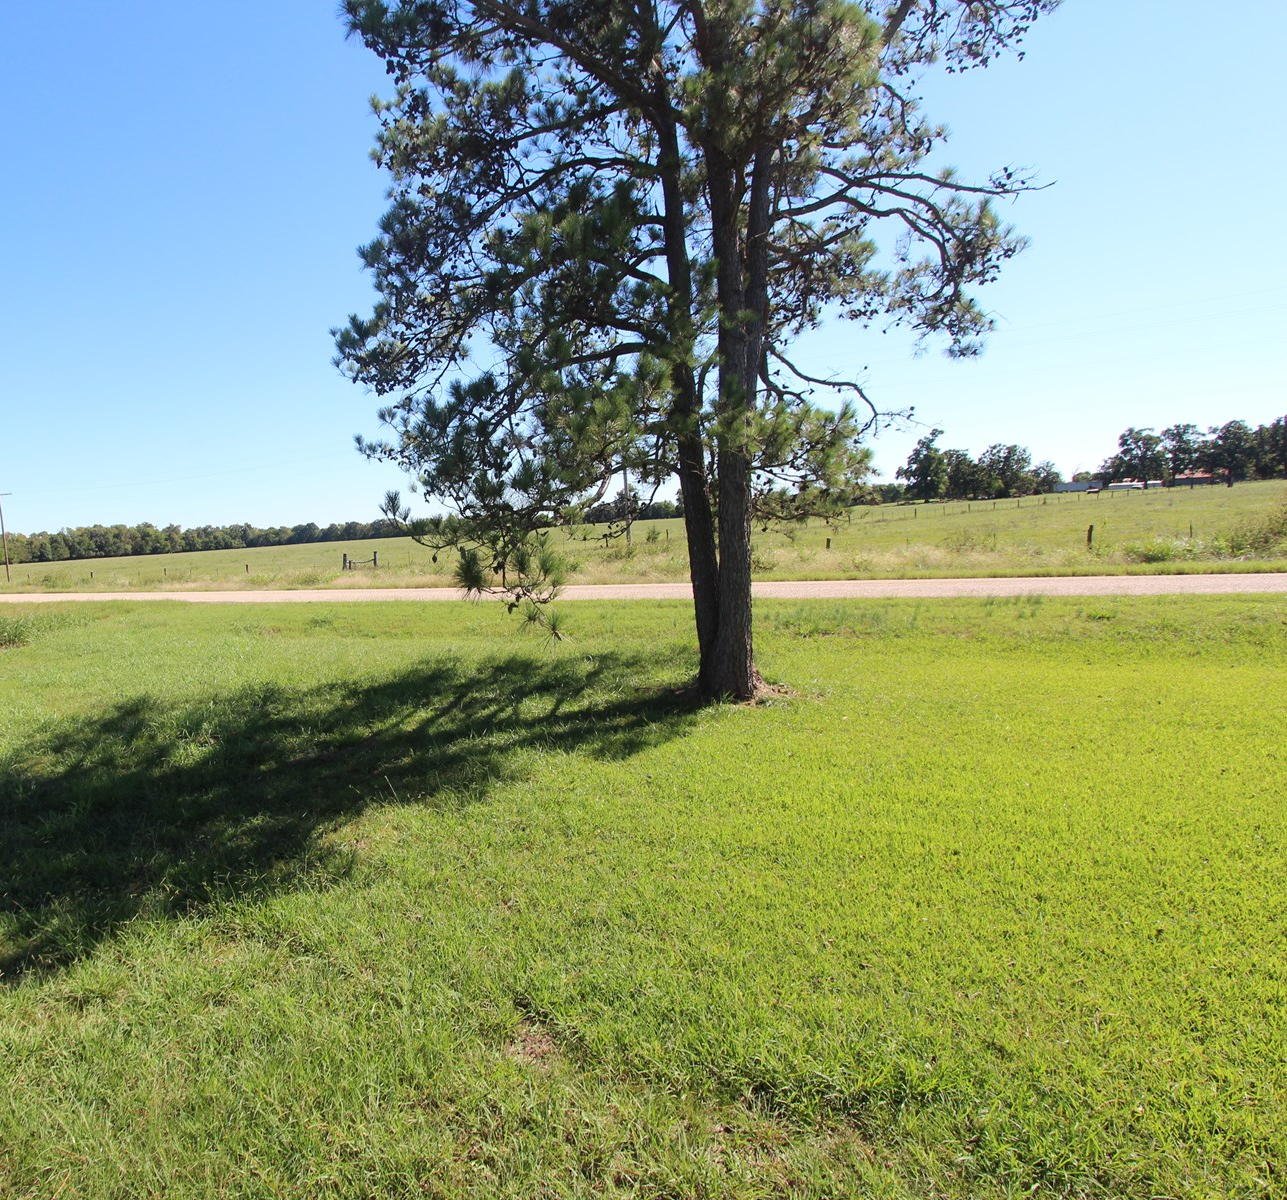 Home Development Site Land For Sale Clarksville Texas